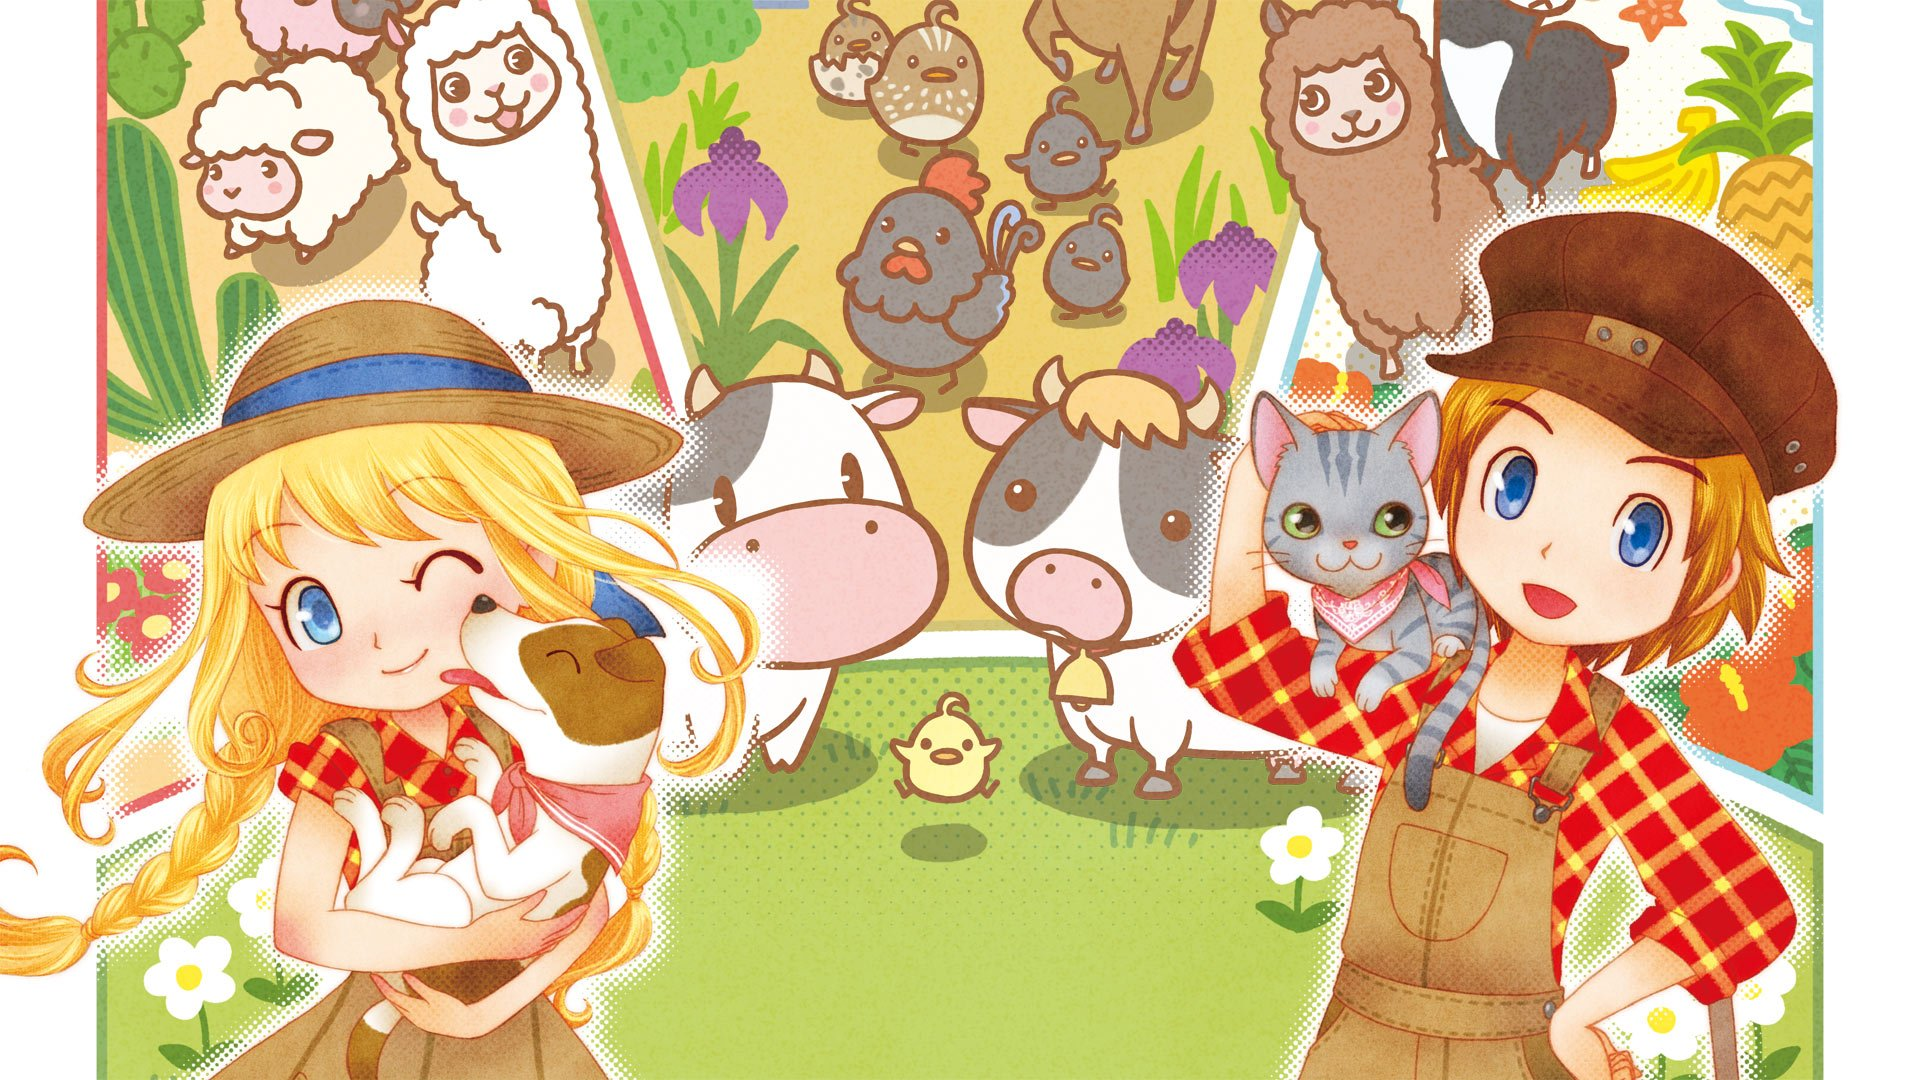 3DS Exclusive Story or Seasons: Trio of Towns Shows Super